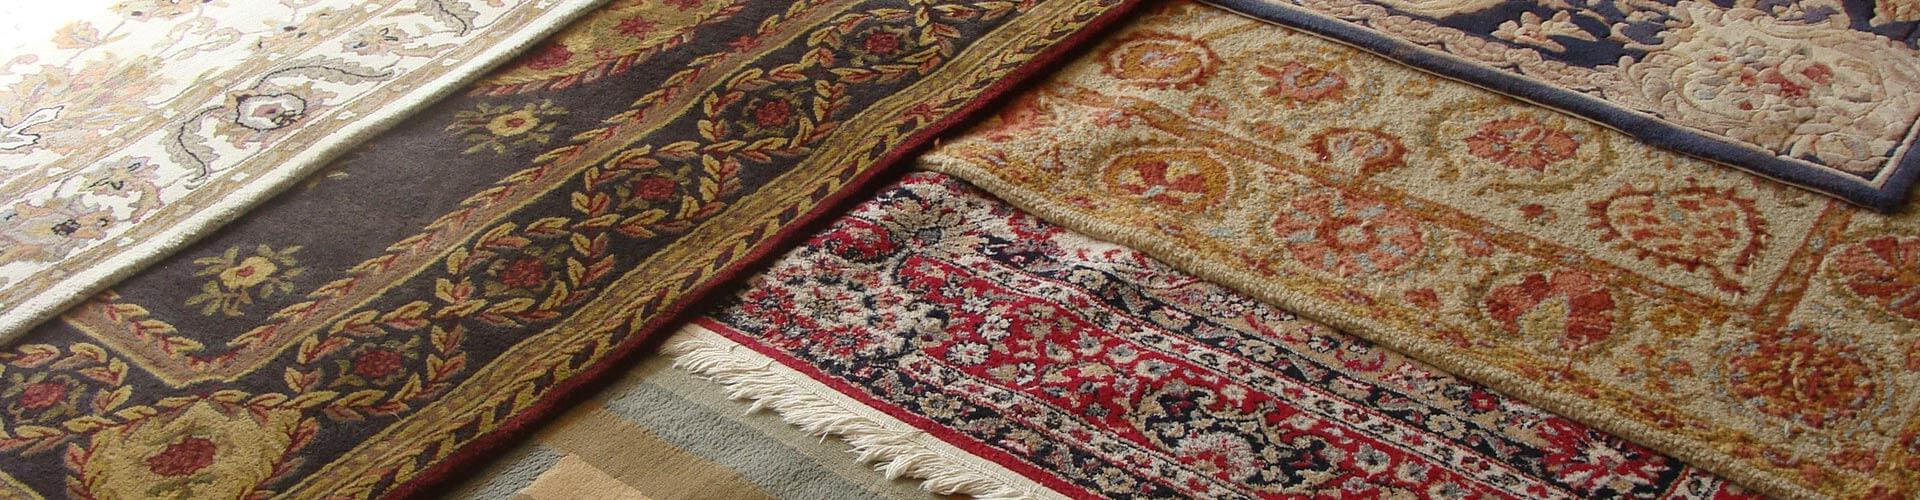 Five Star Oriental Area Rug Cleaning 301 865 1500